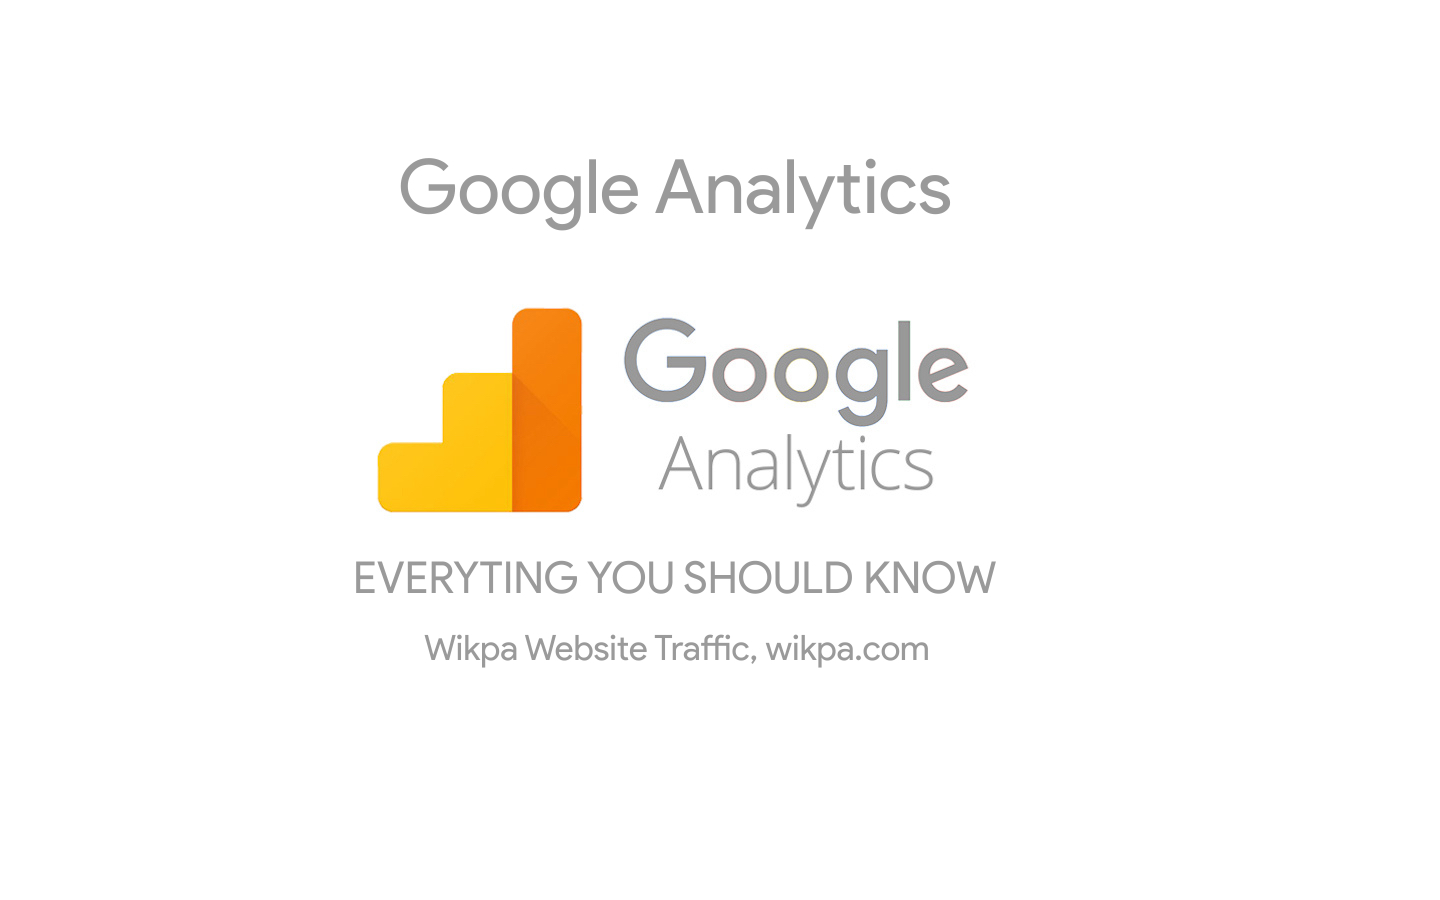 Wikpa Traffic Google Analytics